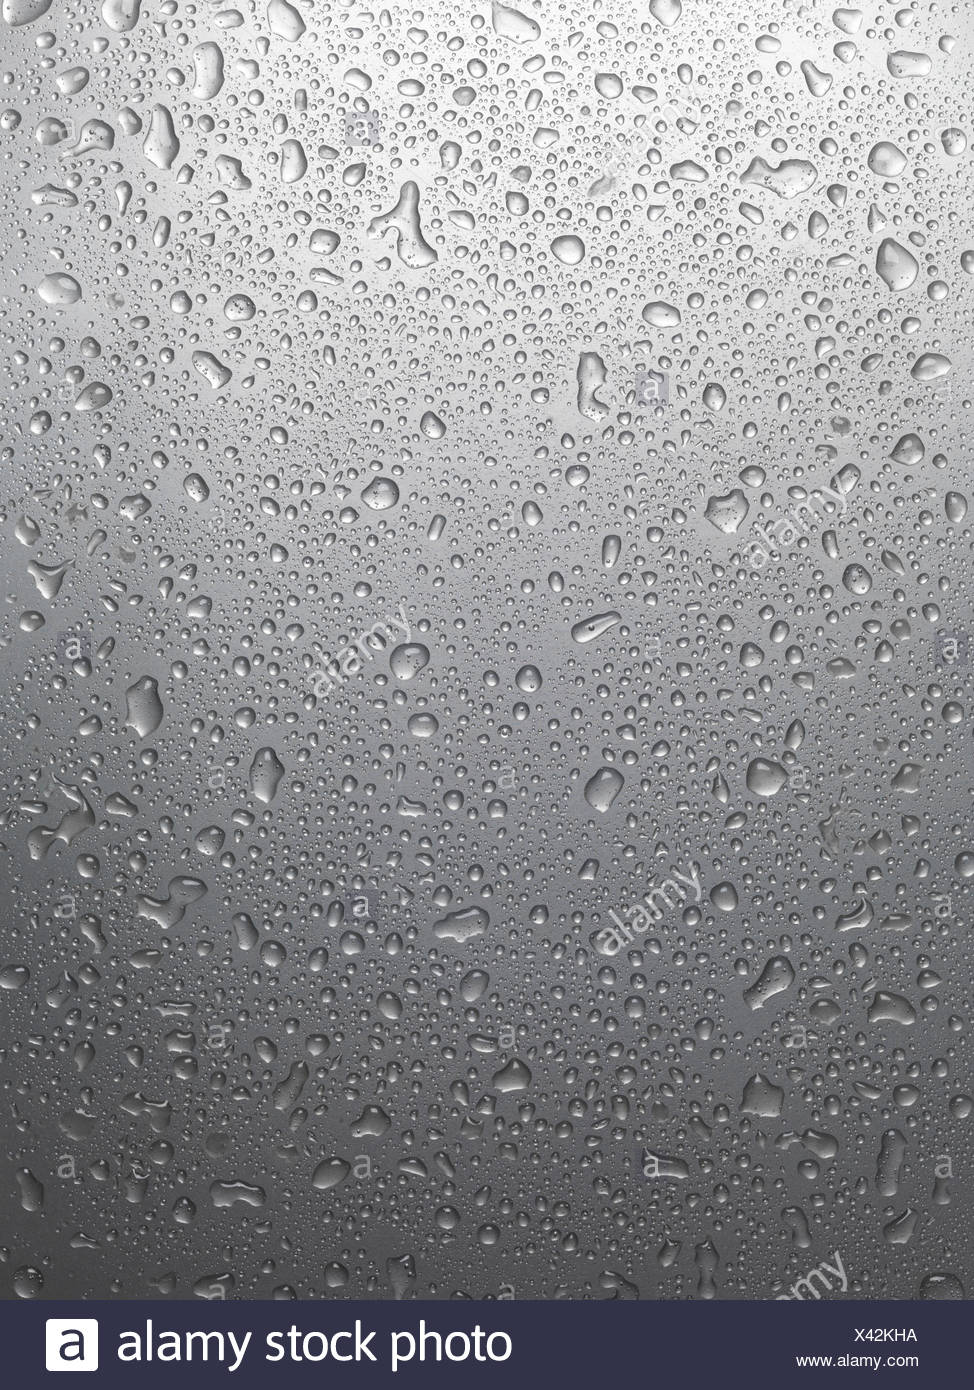 Wet shiny gray metal with drops of water background texture - Stock Image